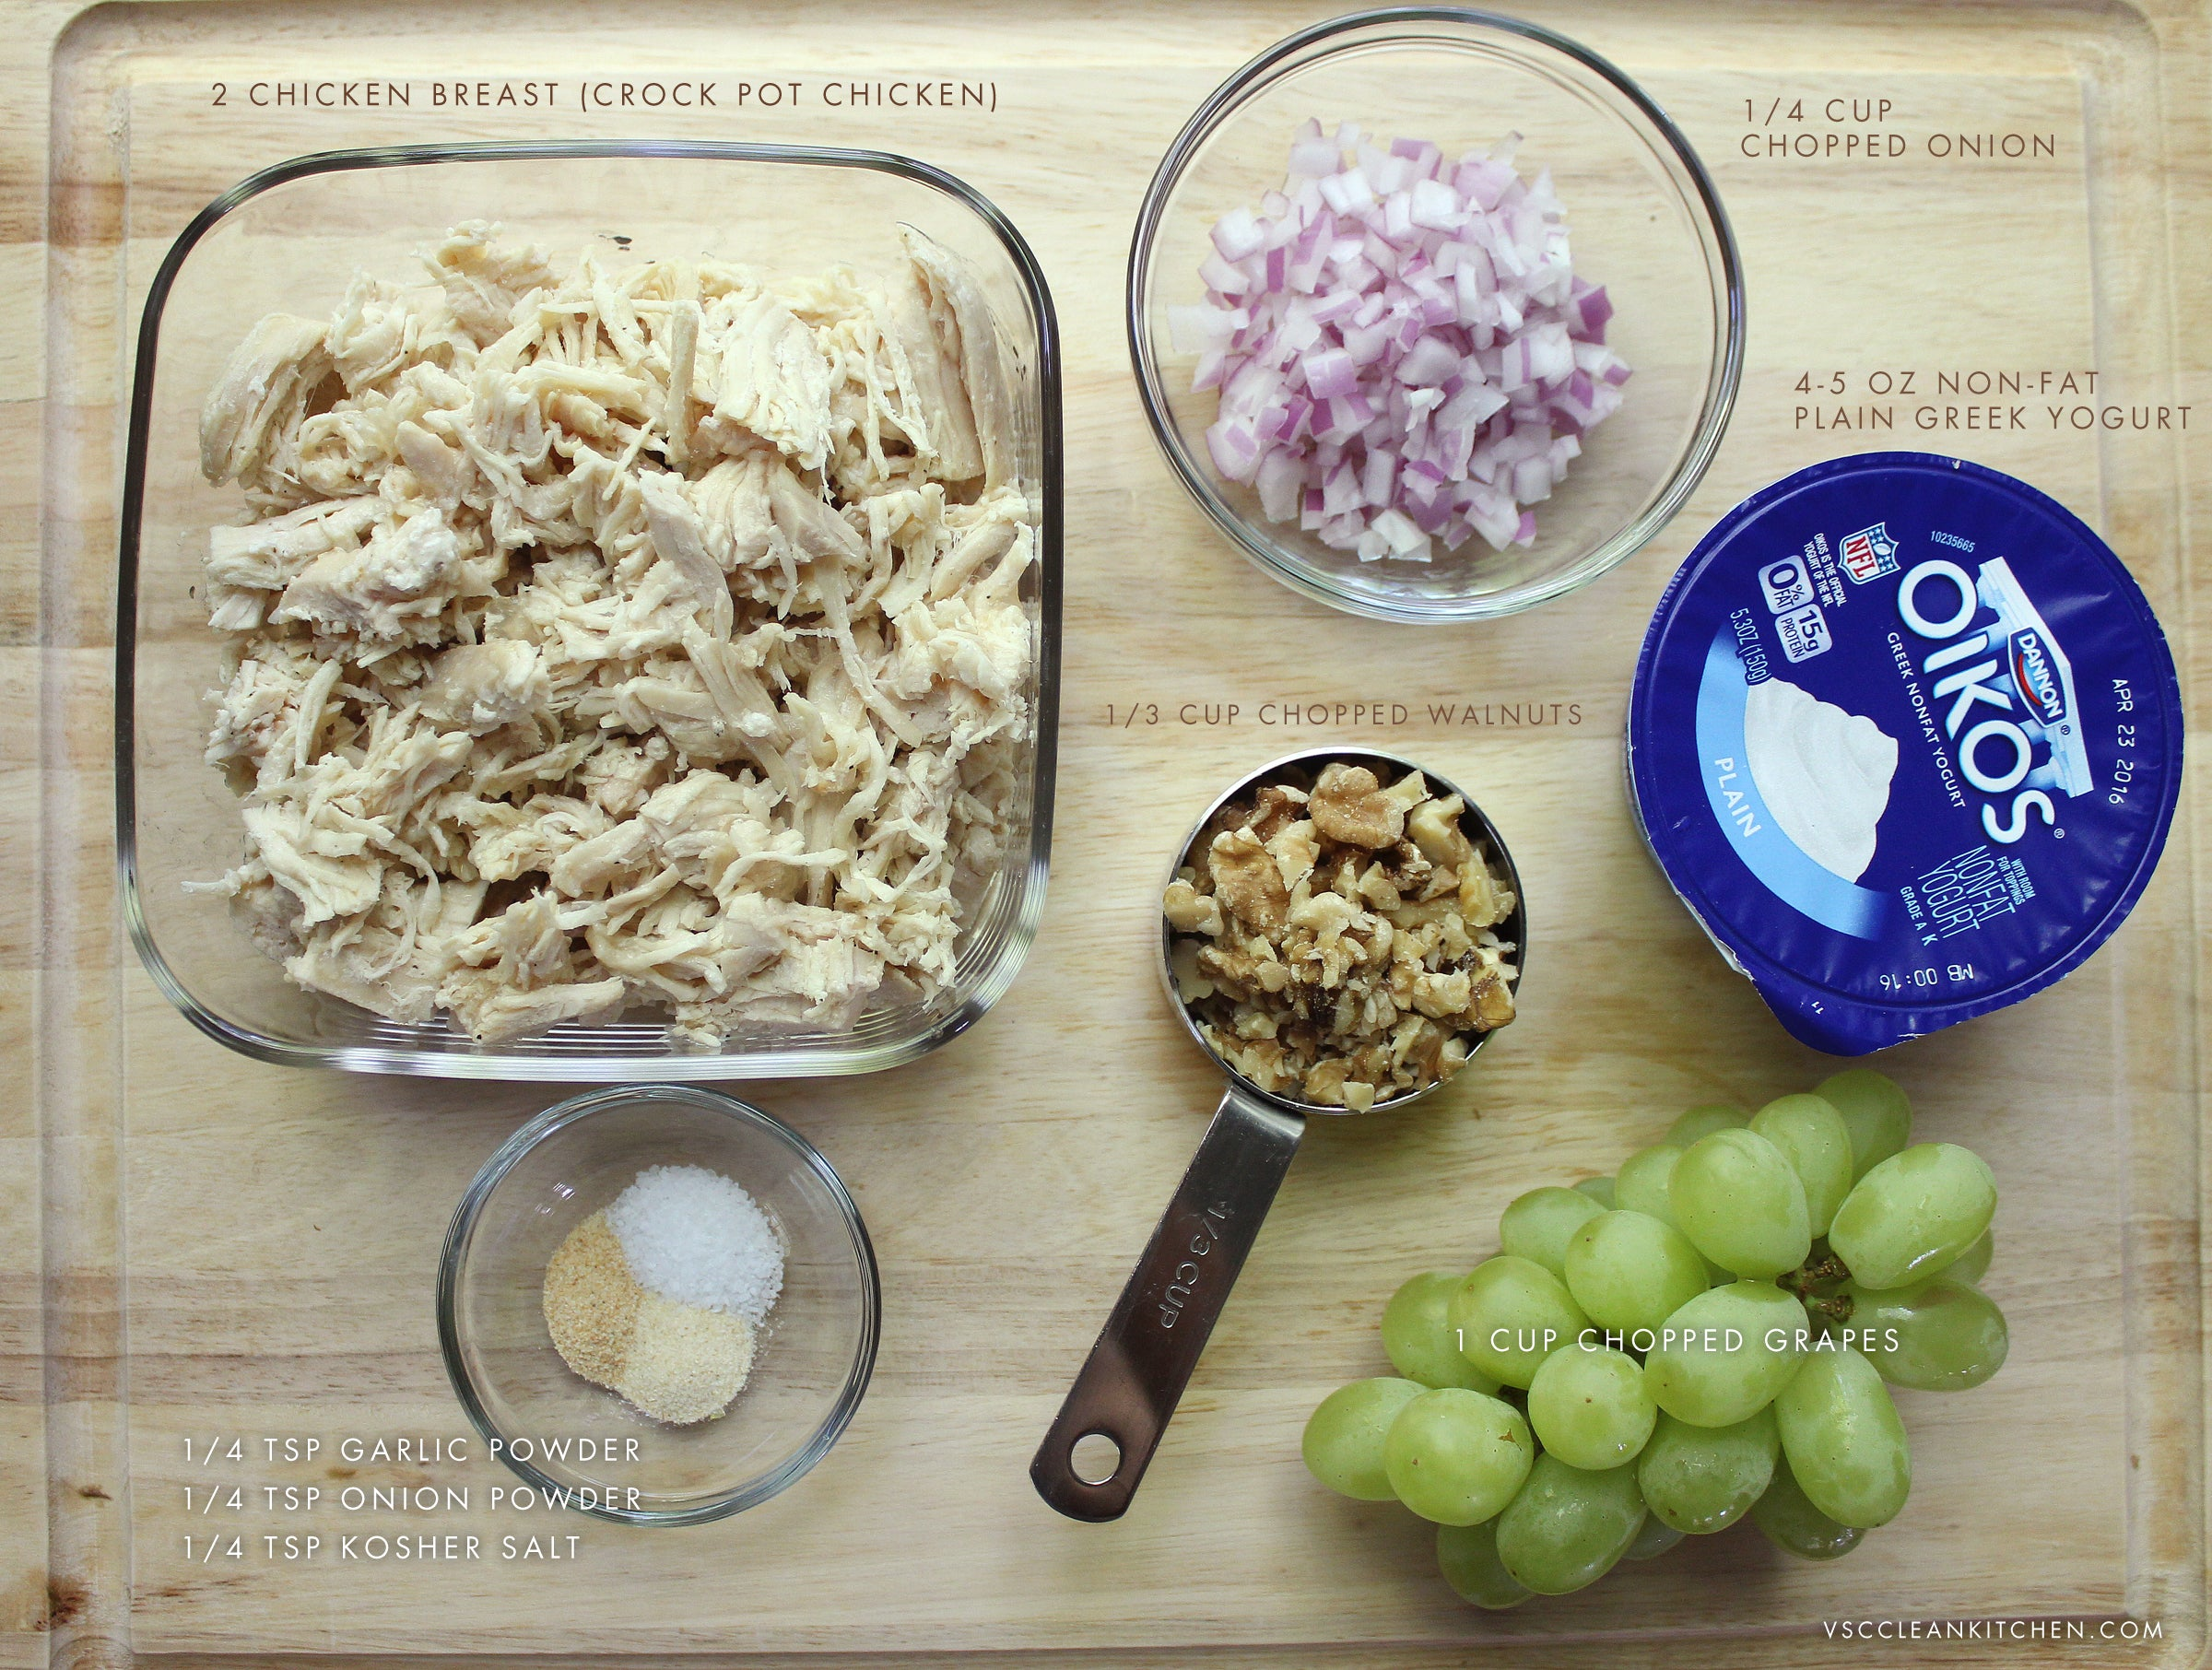 Ingredients_kellerschickensalad8x5